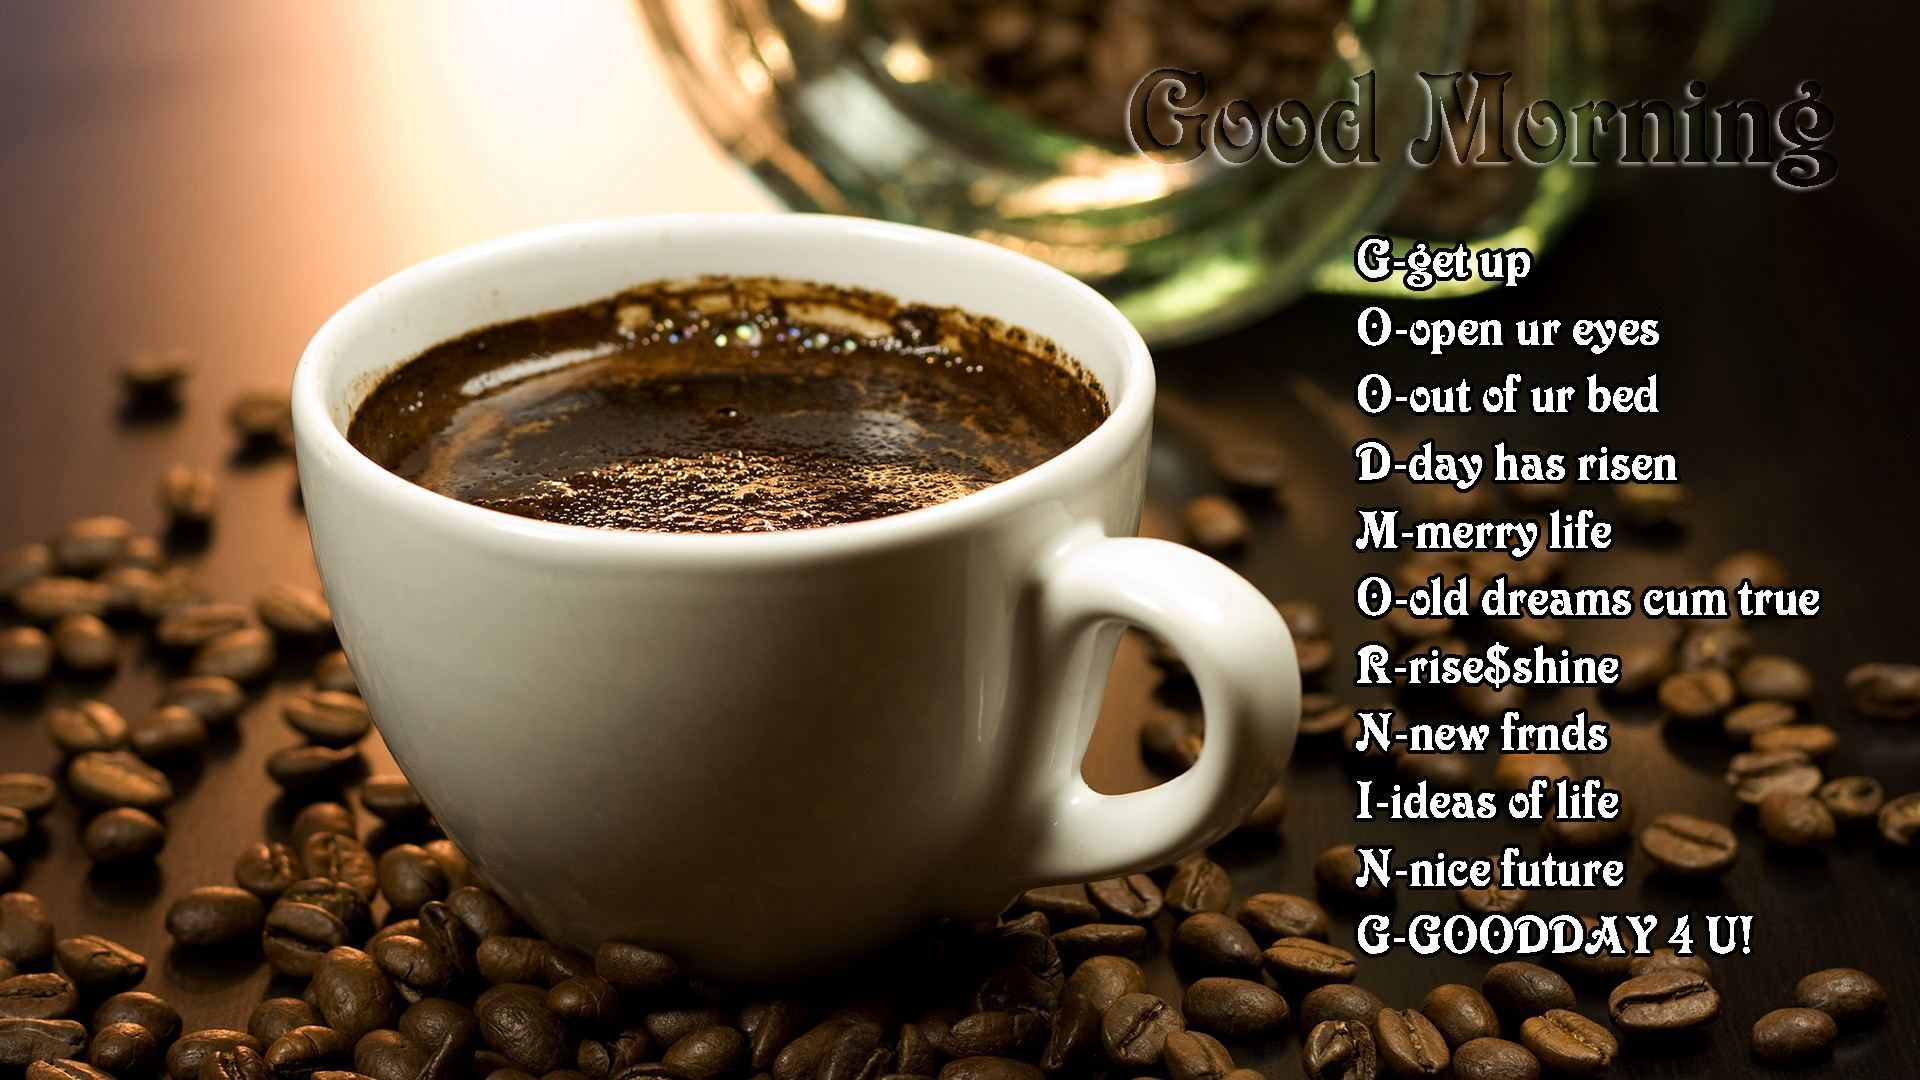 Good Morning Coffee Cup Quotes My Blog